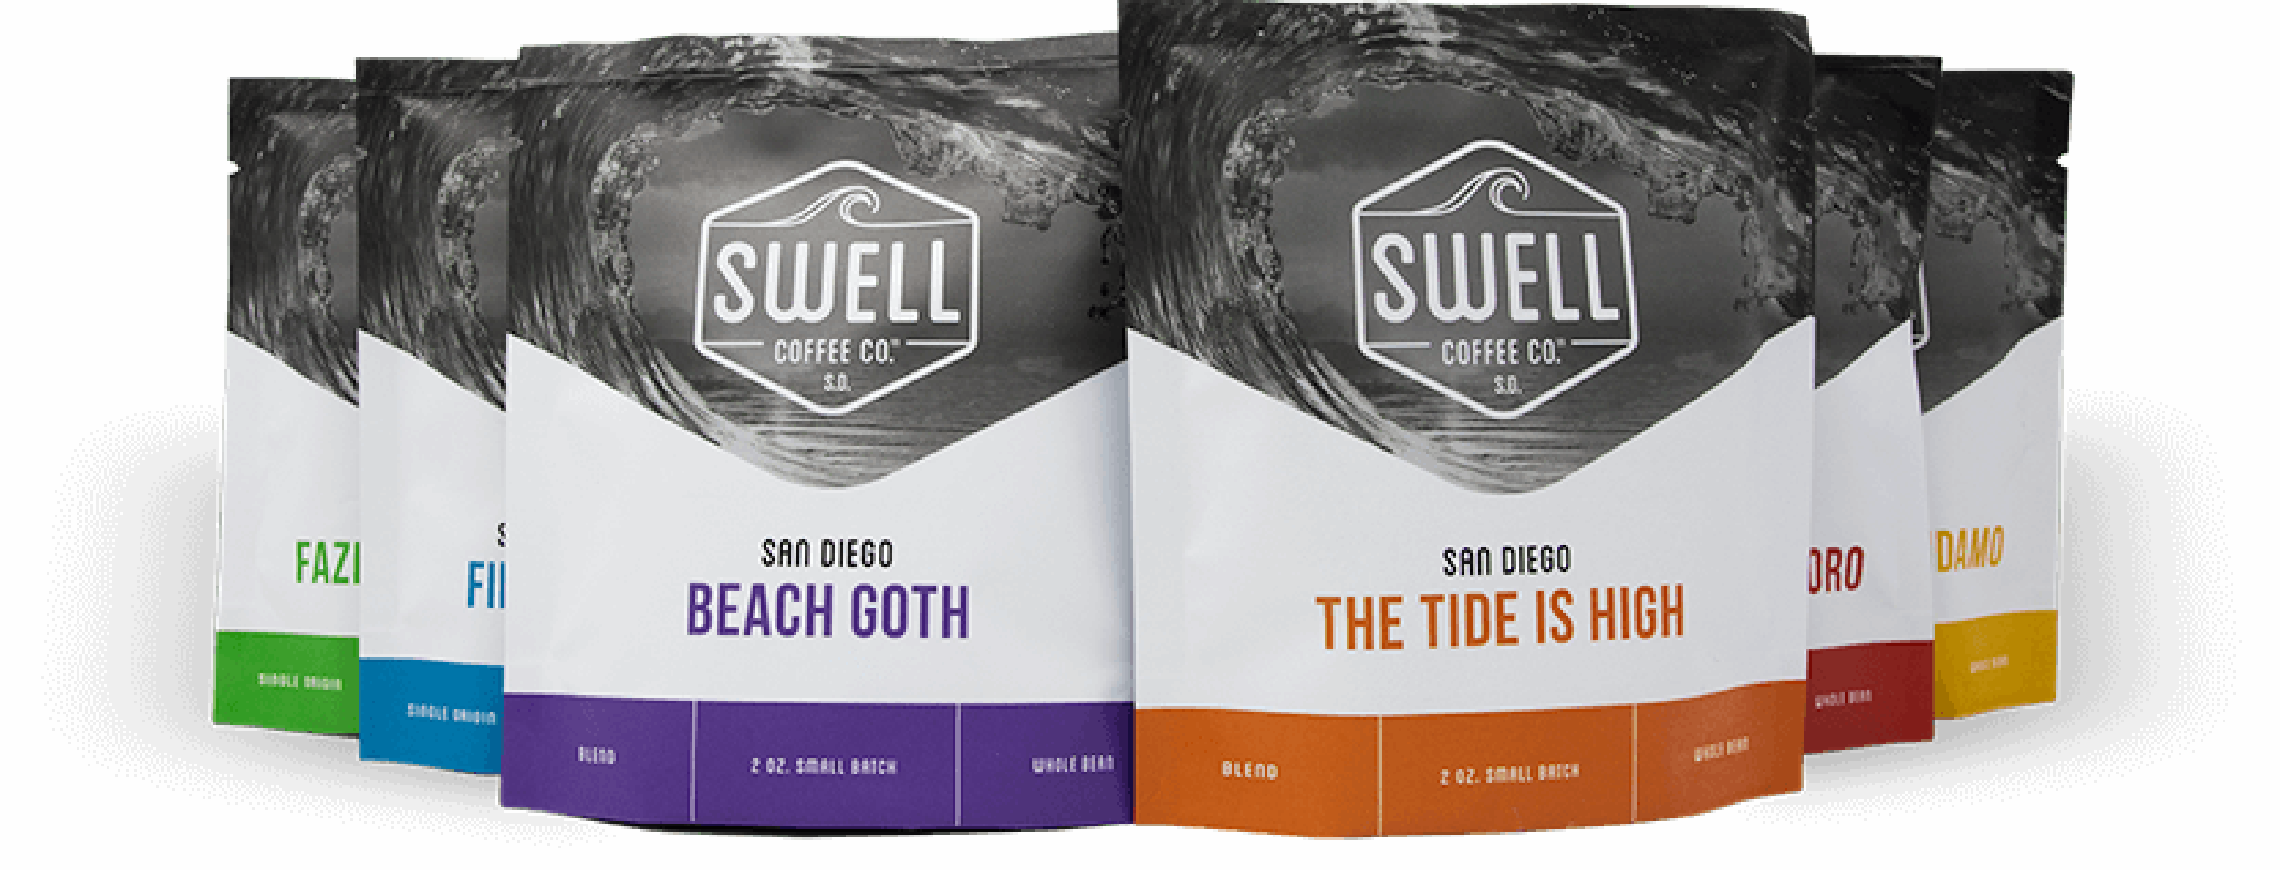 Swell coffee products